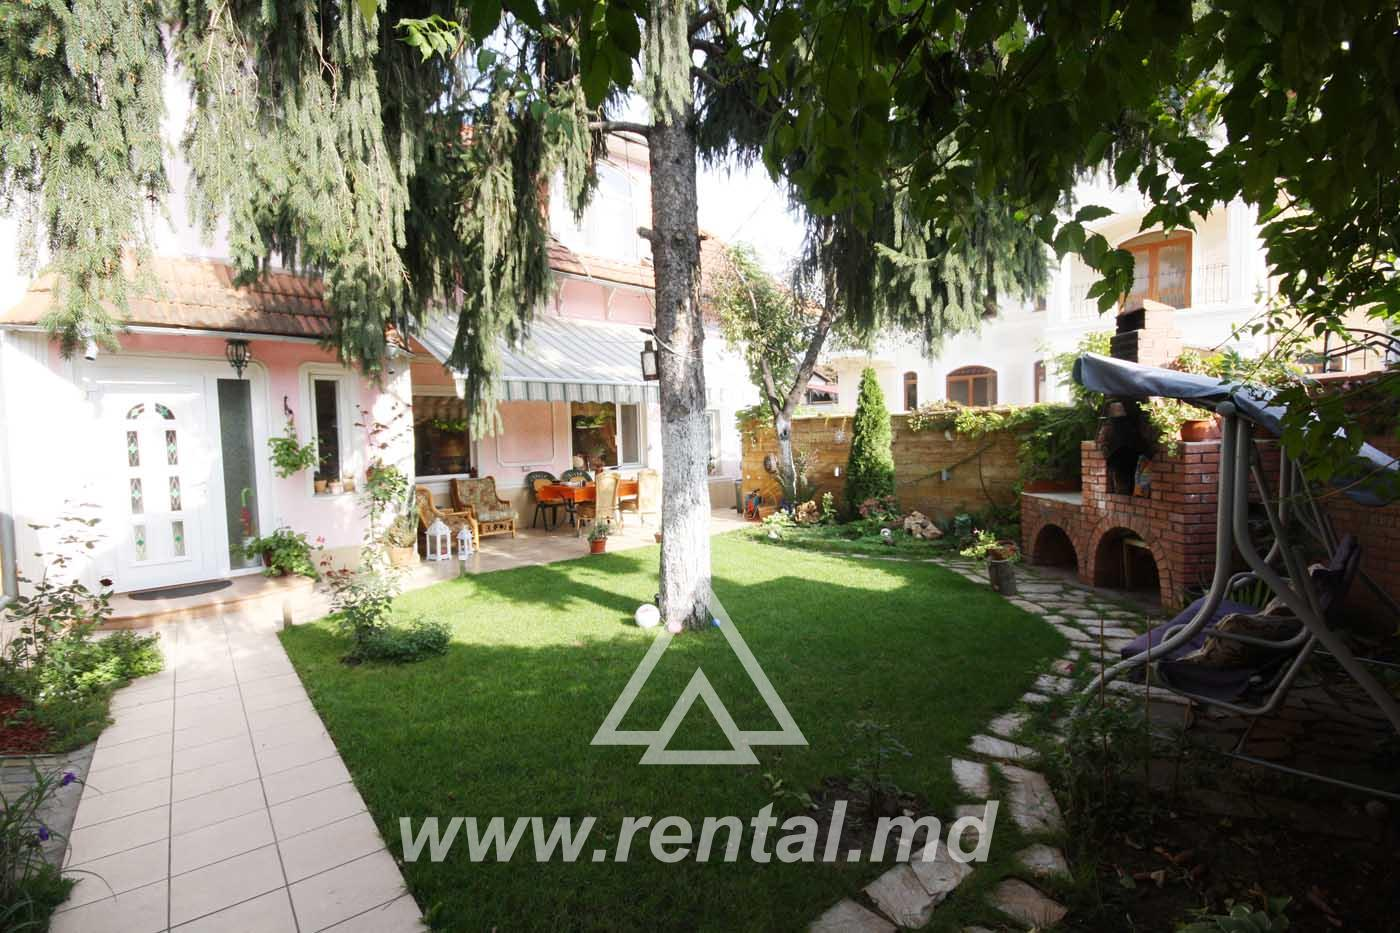 House for rent in Chisinau center